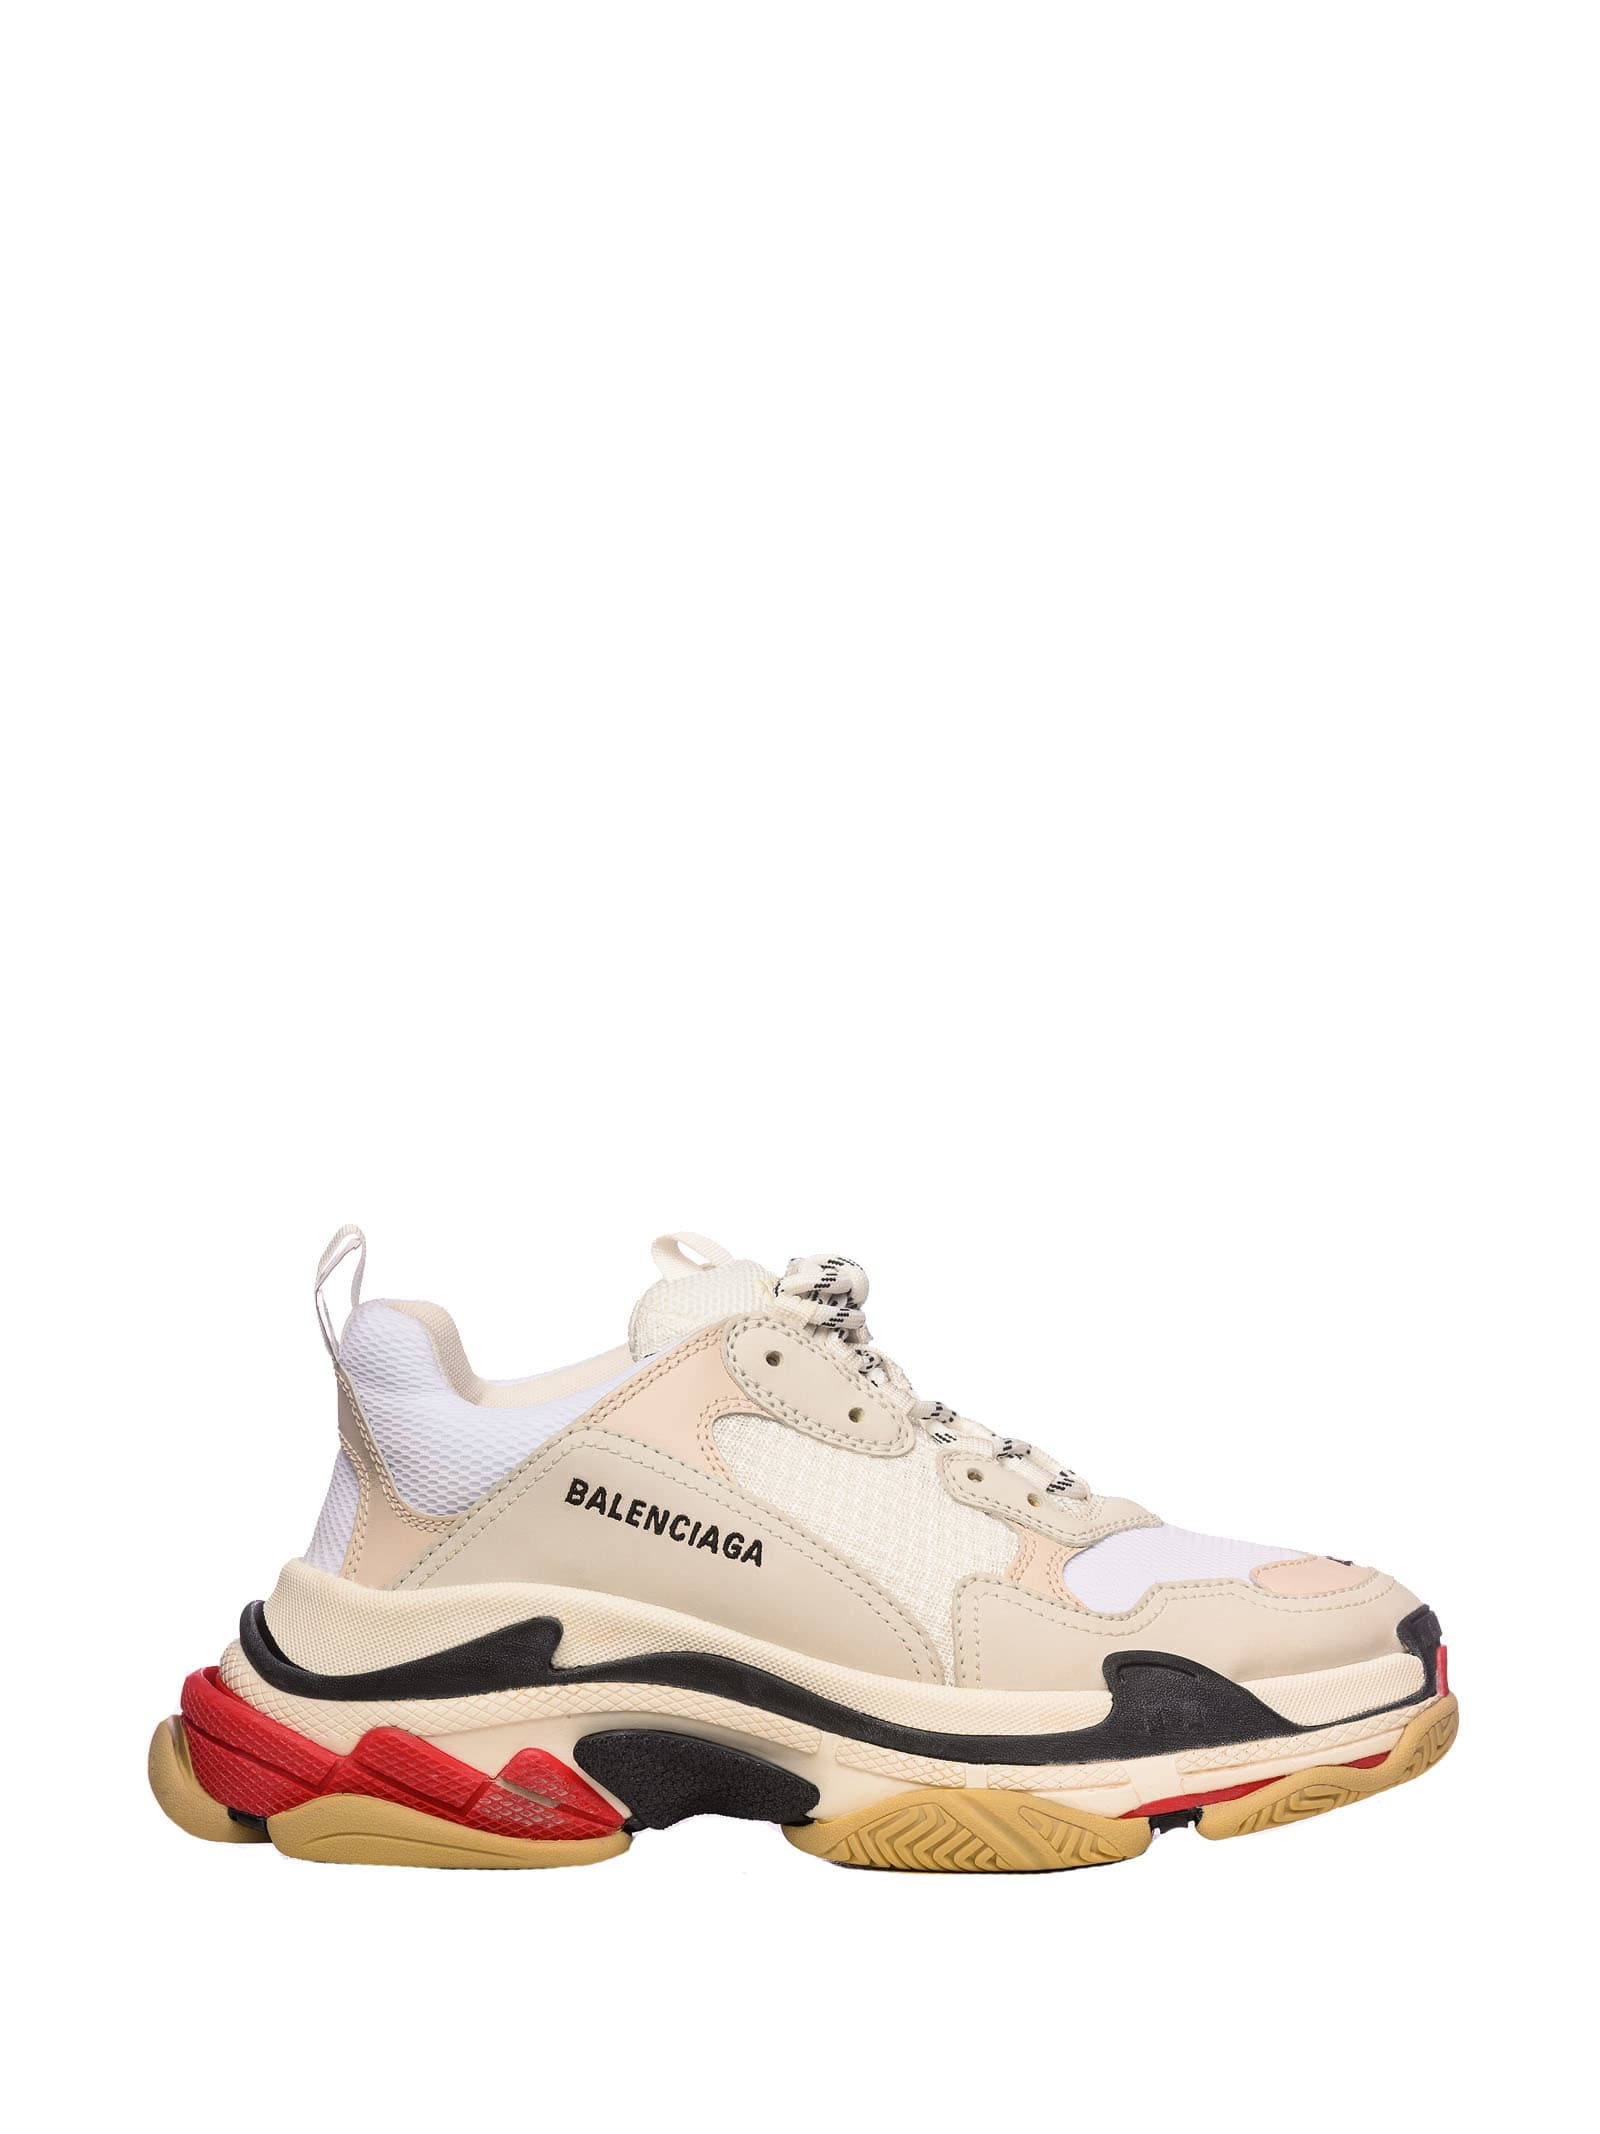 Best price on the market at italist | Balenciaga Balenciaga Balenciaga Triple S Trainers